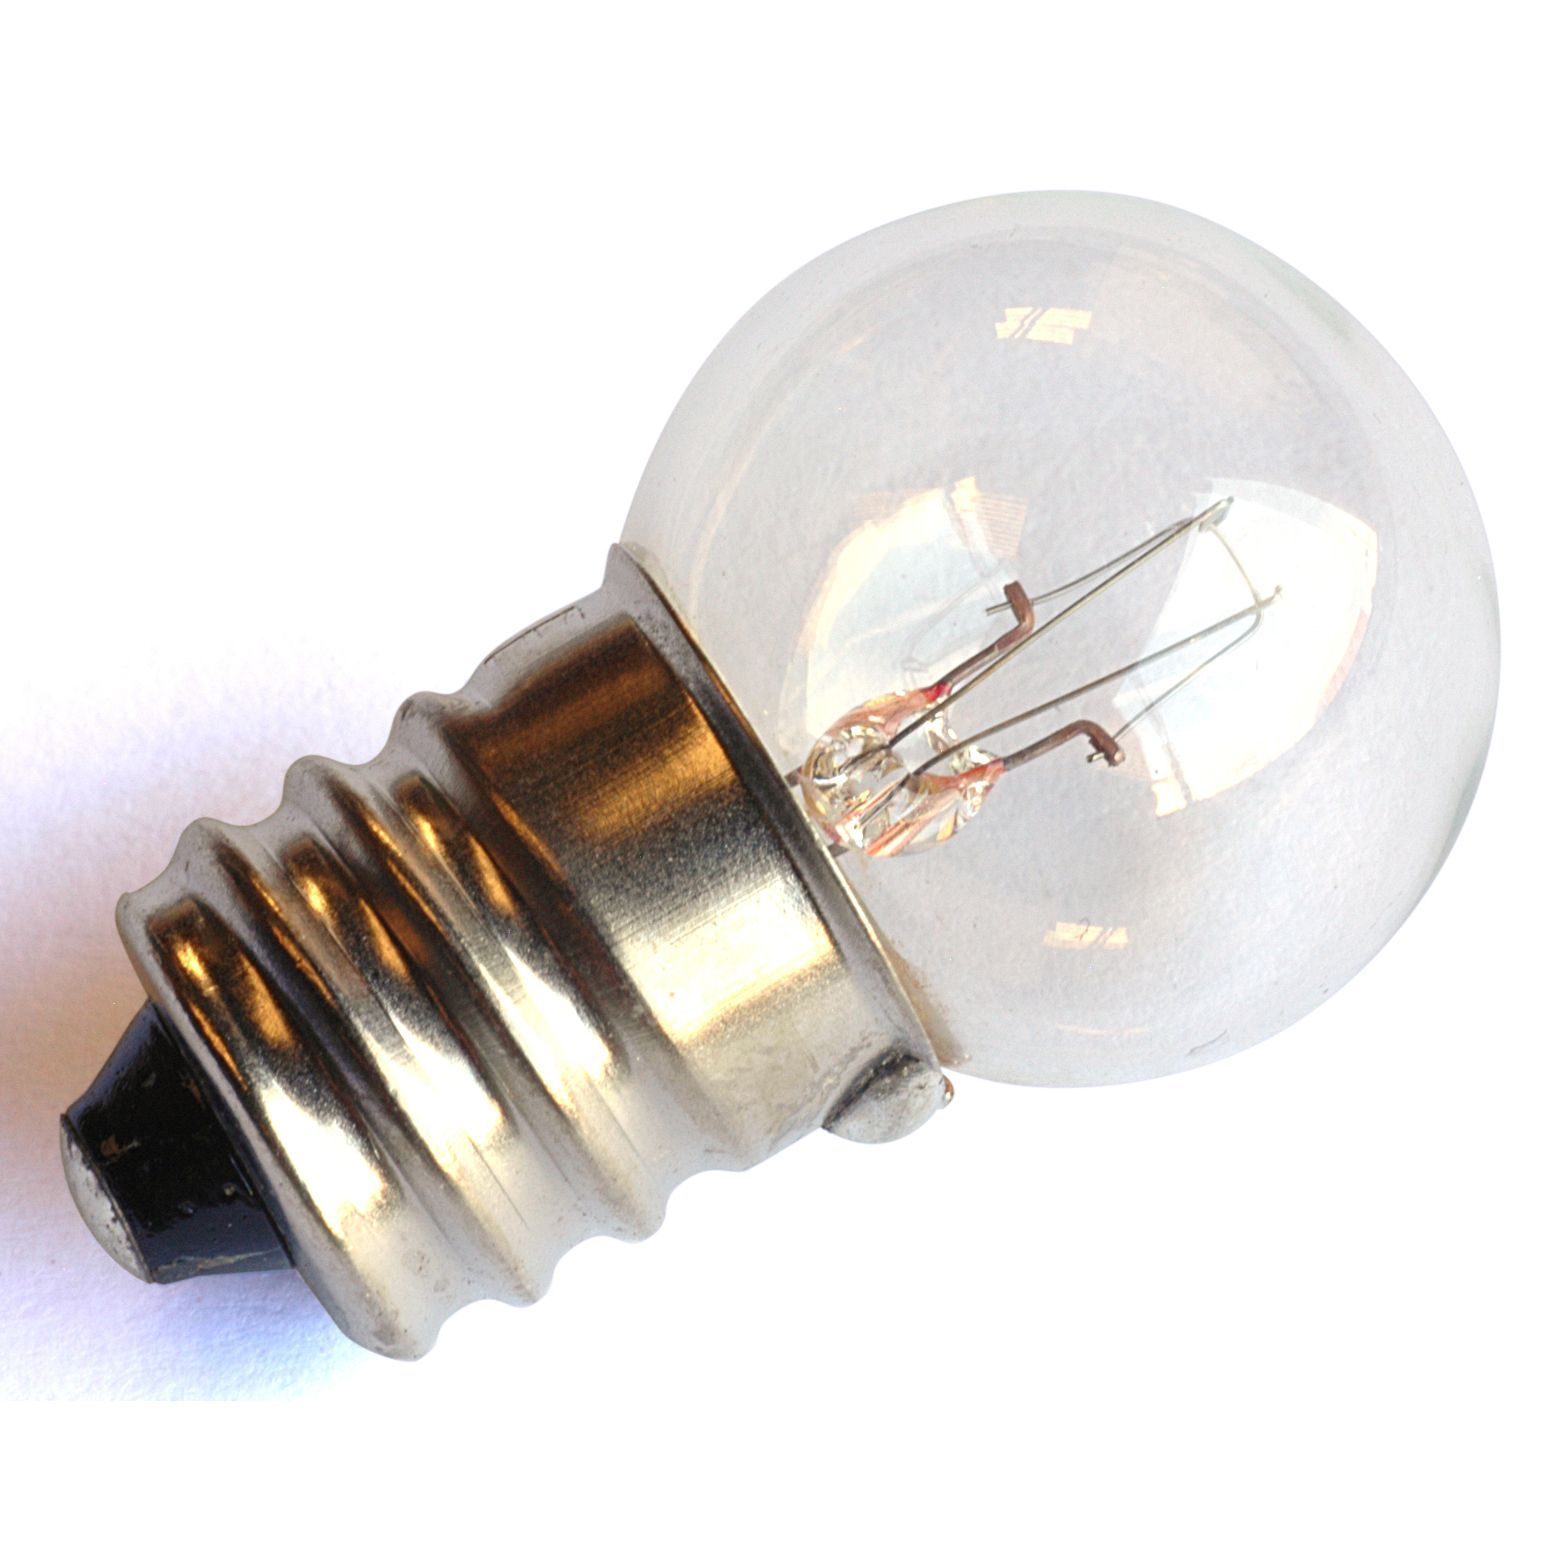 Online Shopping Bedding Furniture Electronics Jewelry Clothing More Light Bulb Bulb Clear Glass